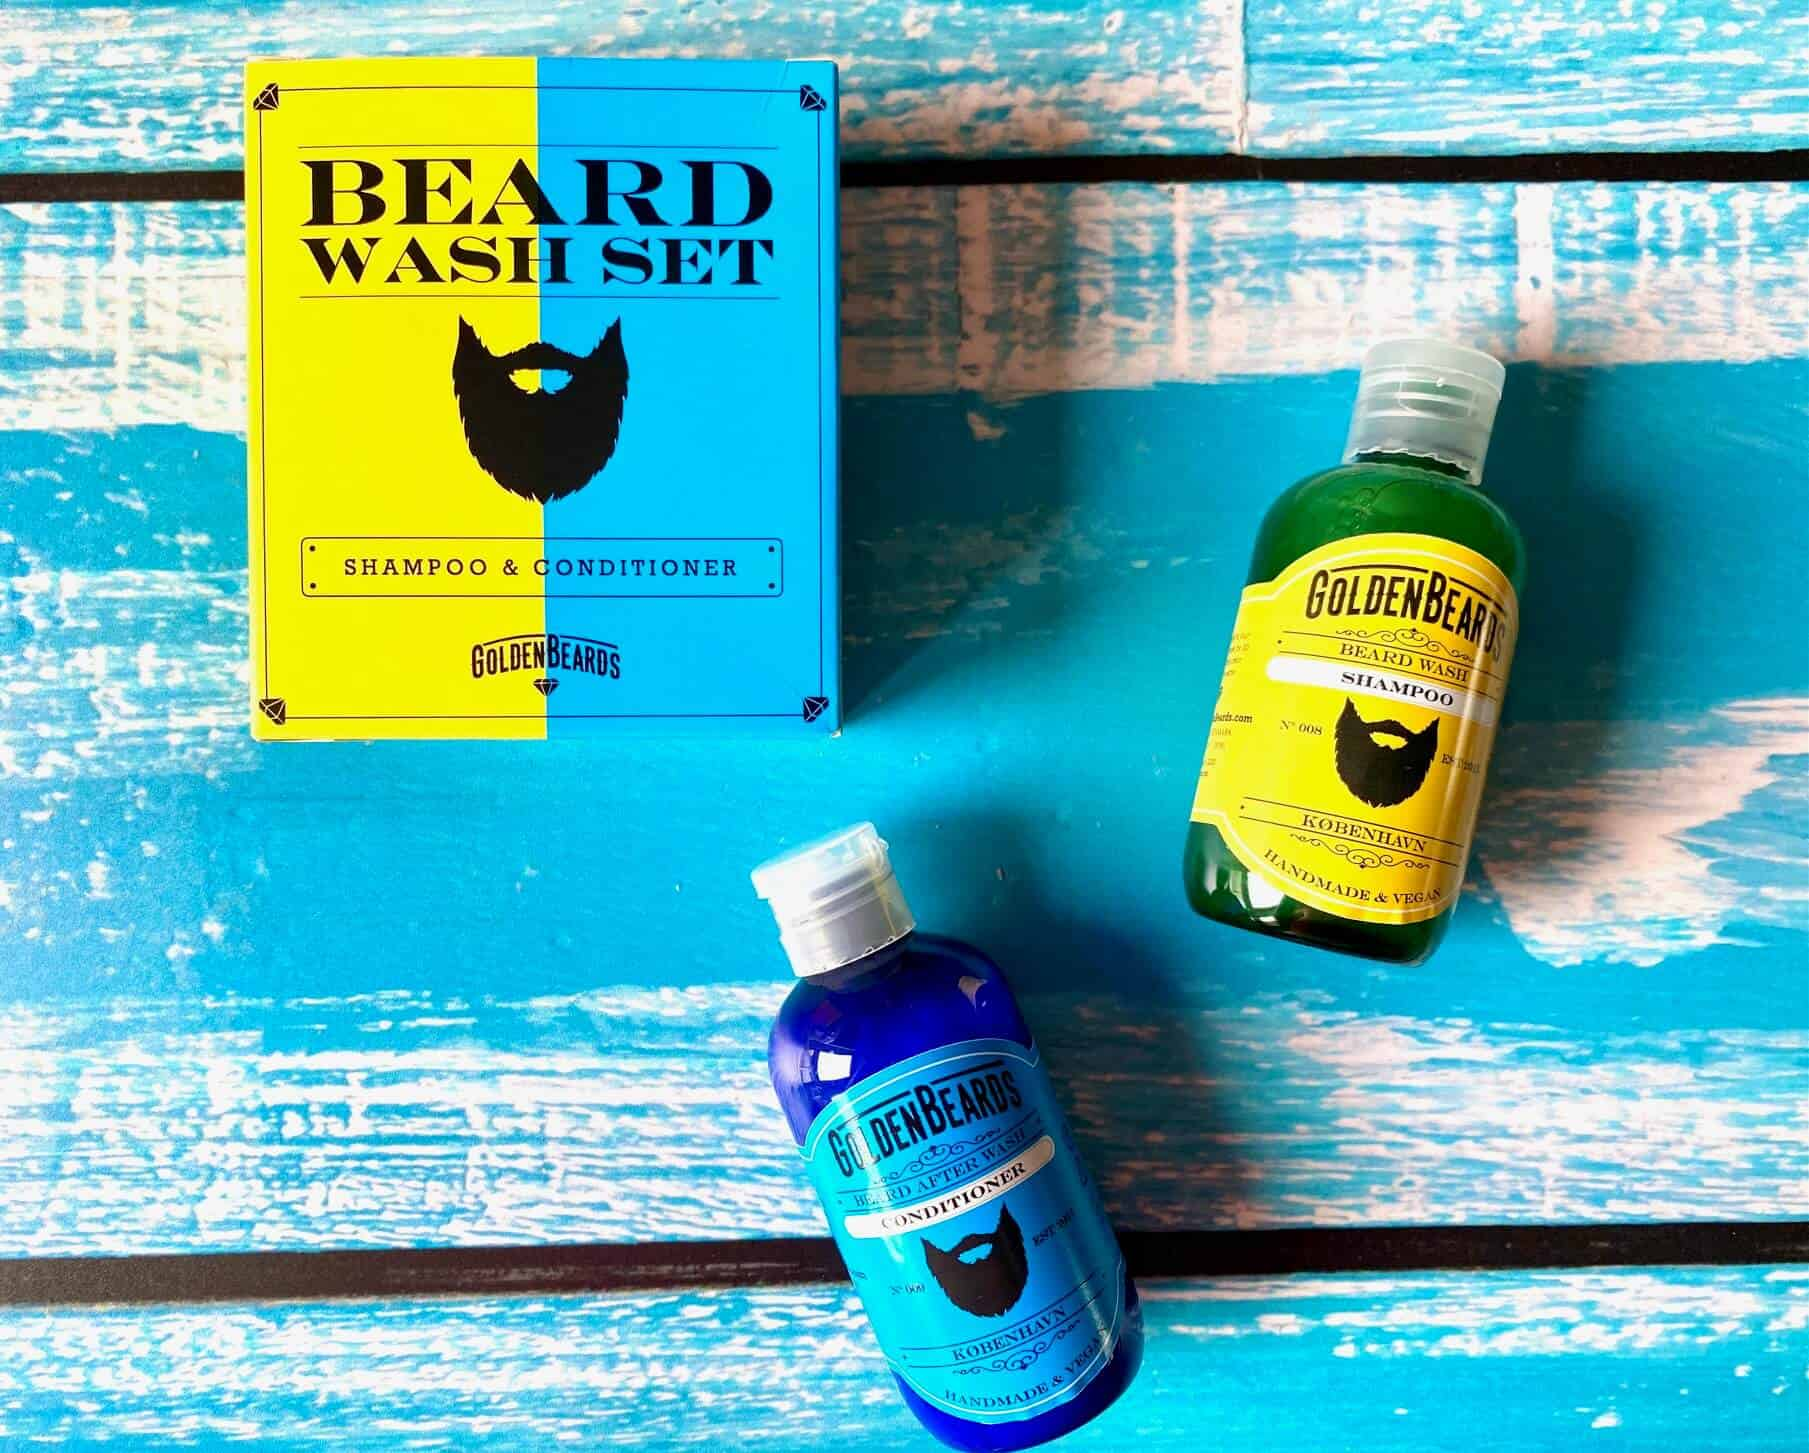 A Christmas Giveaway With Trendhim – Beard Wash Set